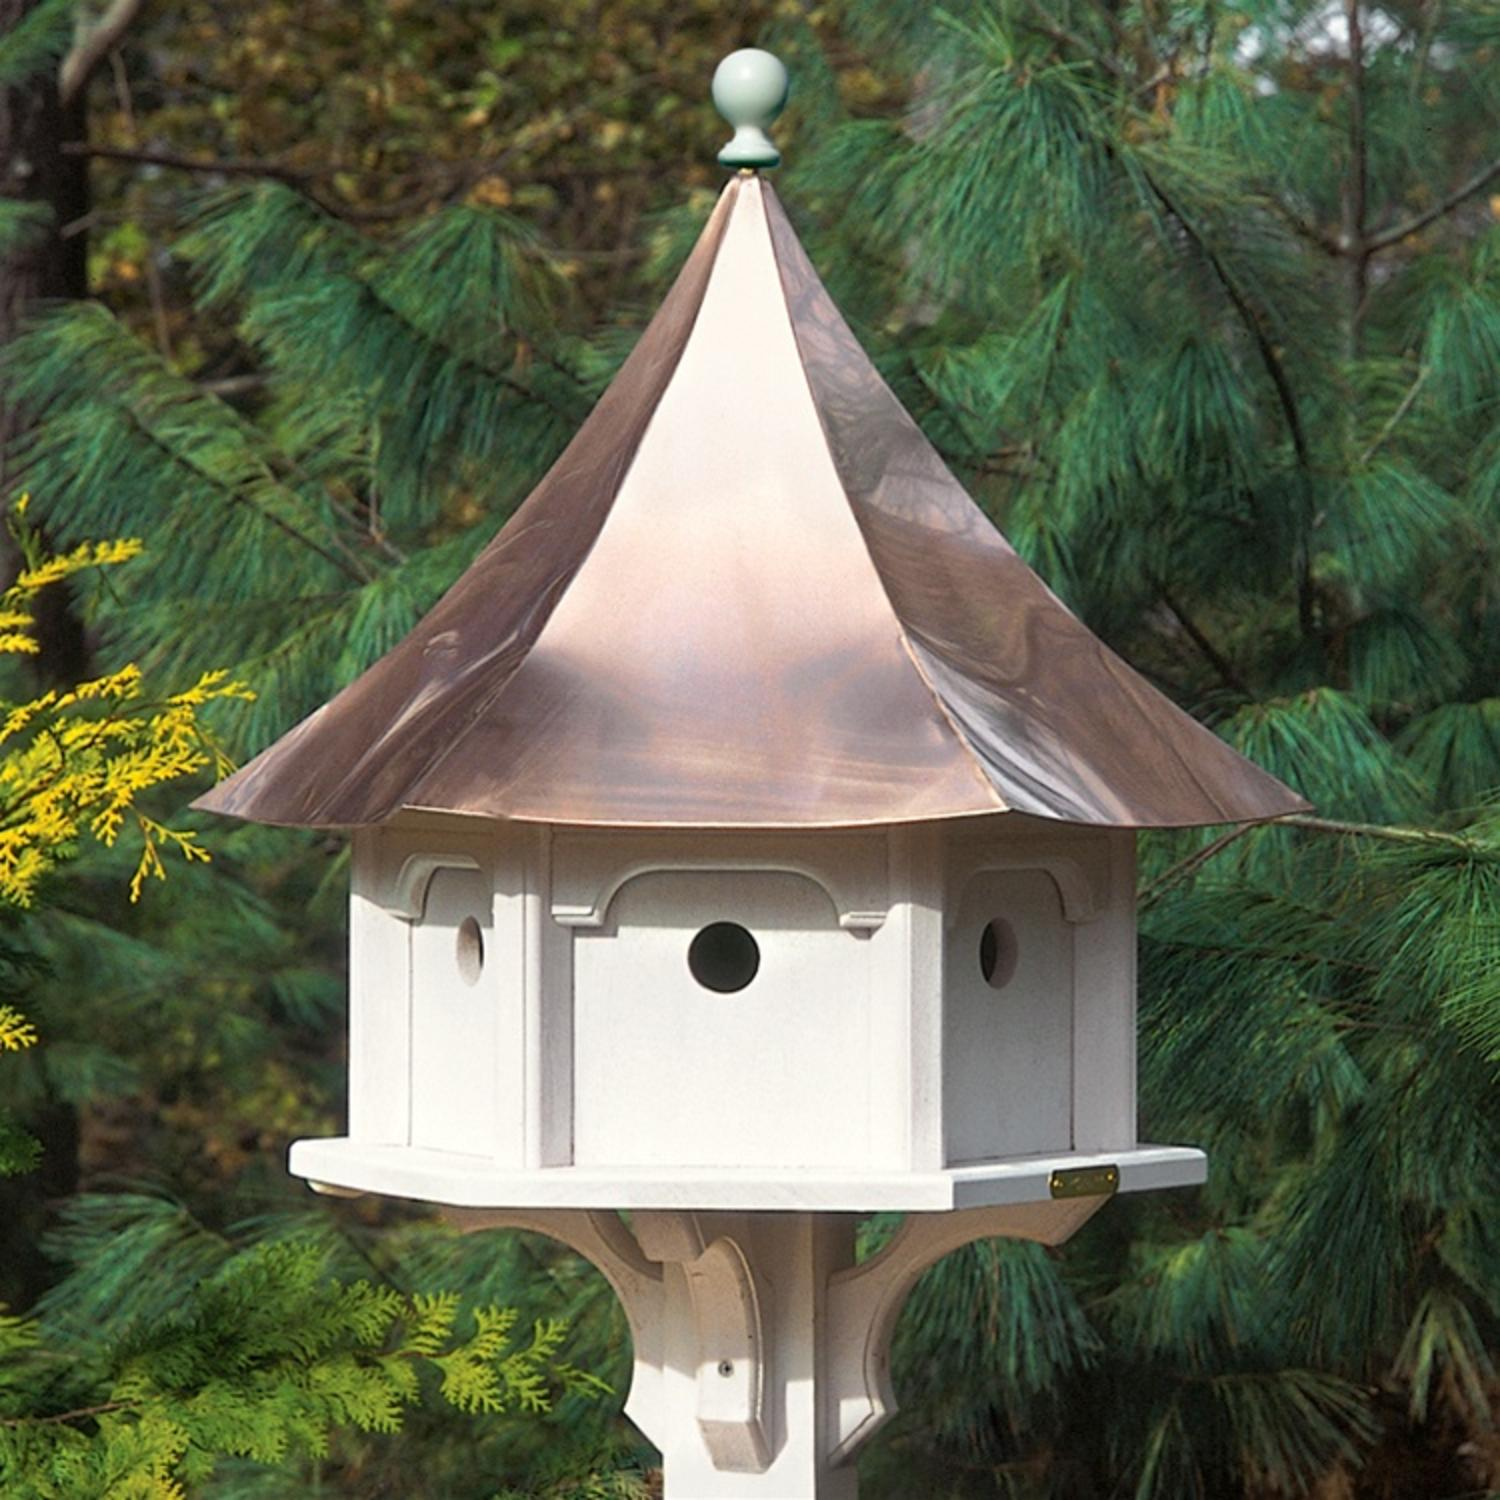 """25"""" Outdoor Enchanted Polished Copper Carousel Garden Birdhouse by CC Home Furnishings"""